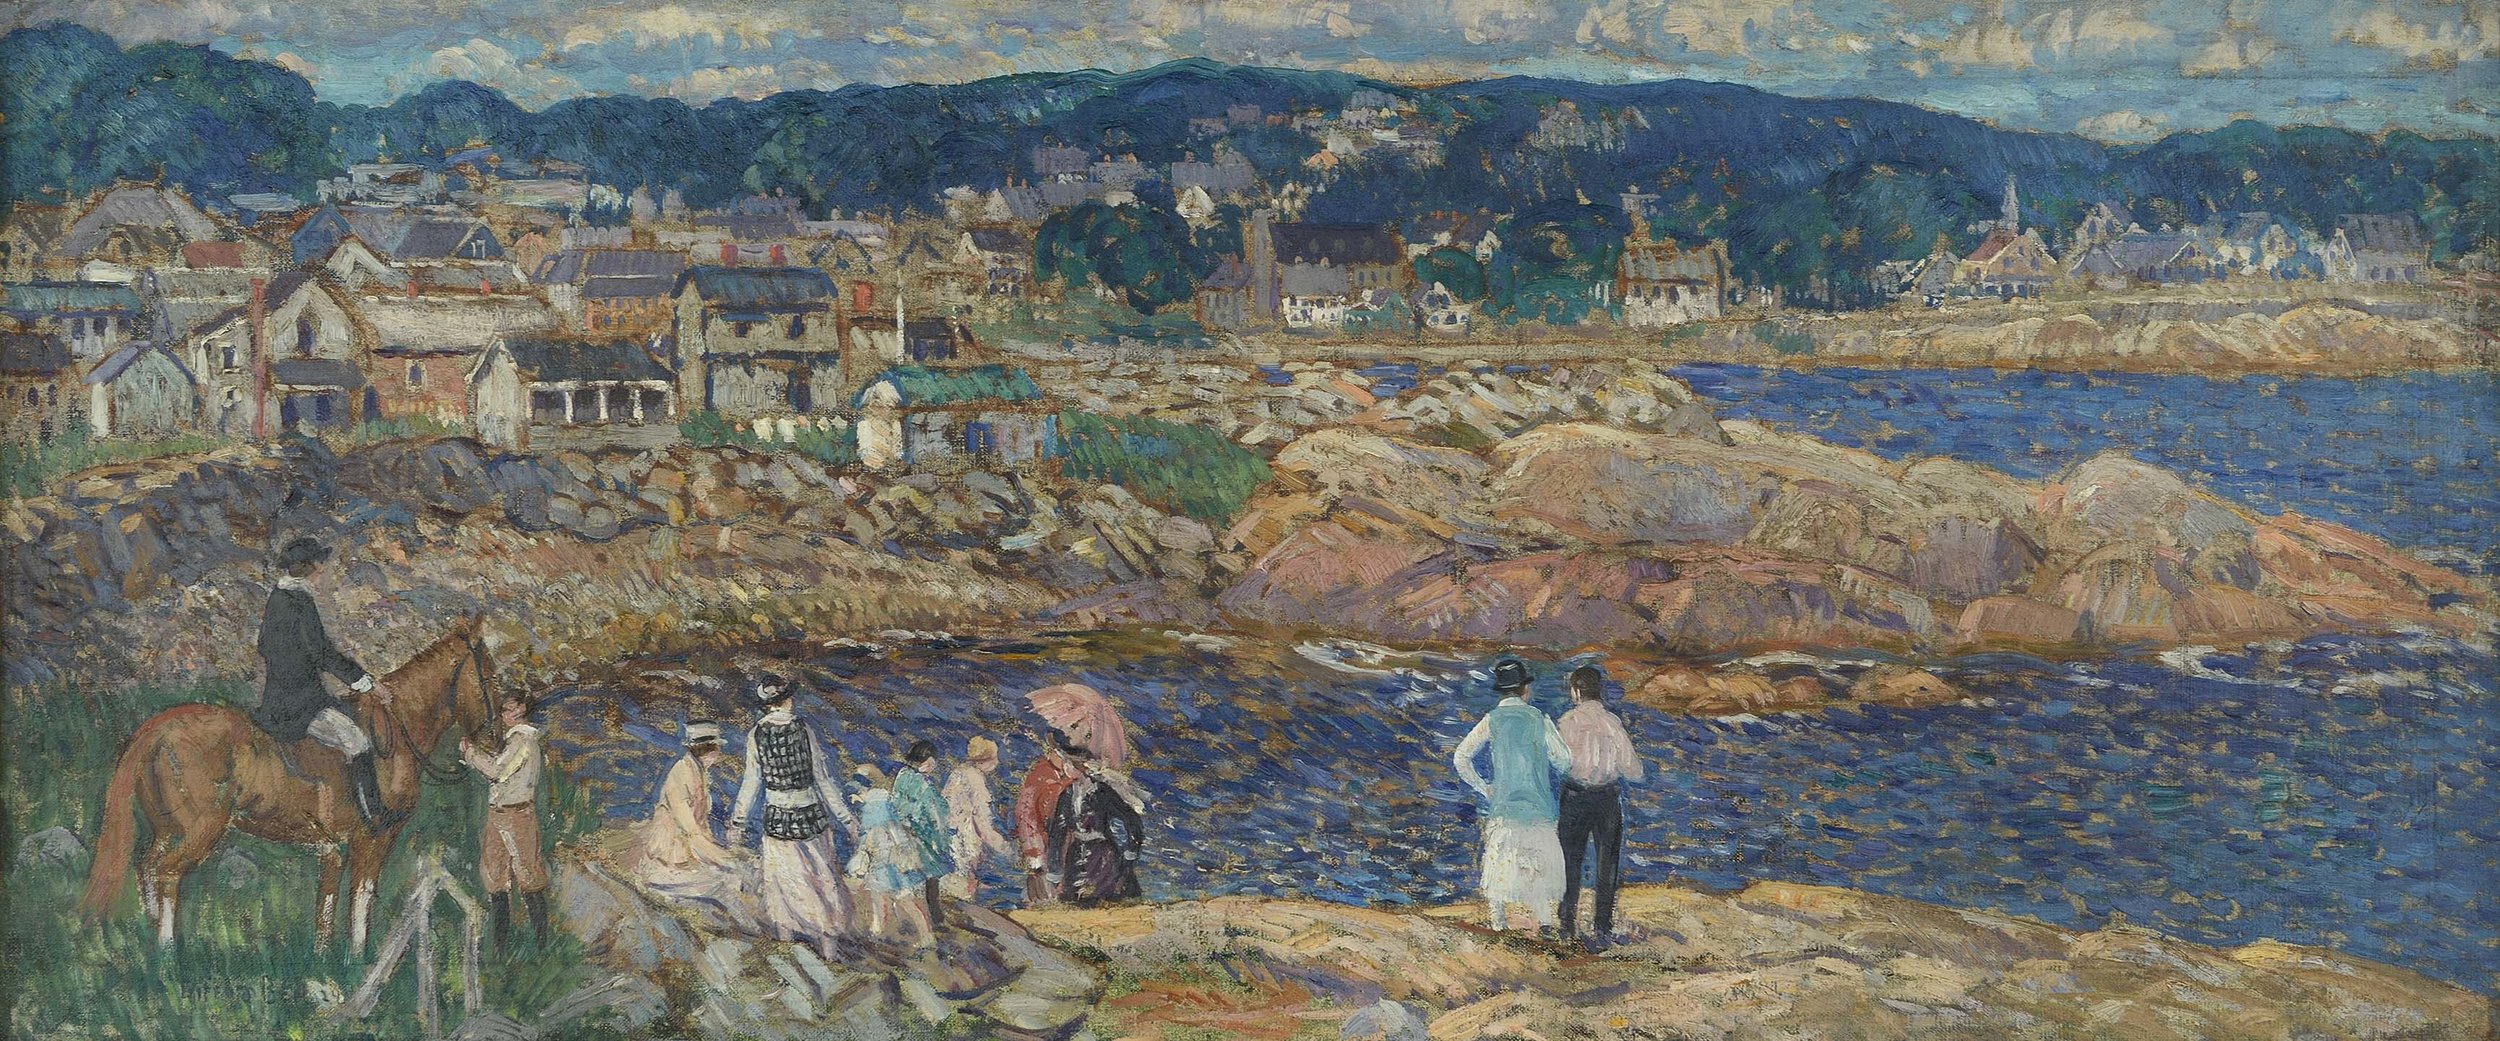 Painting of people standing on waterfront, horse (with rider) on left, houses and mountains in background.